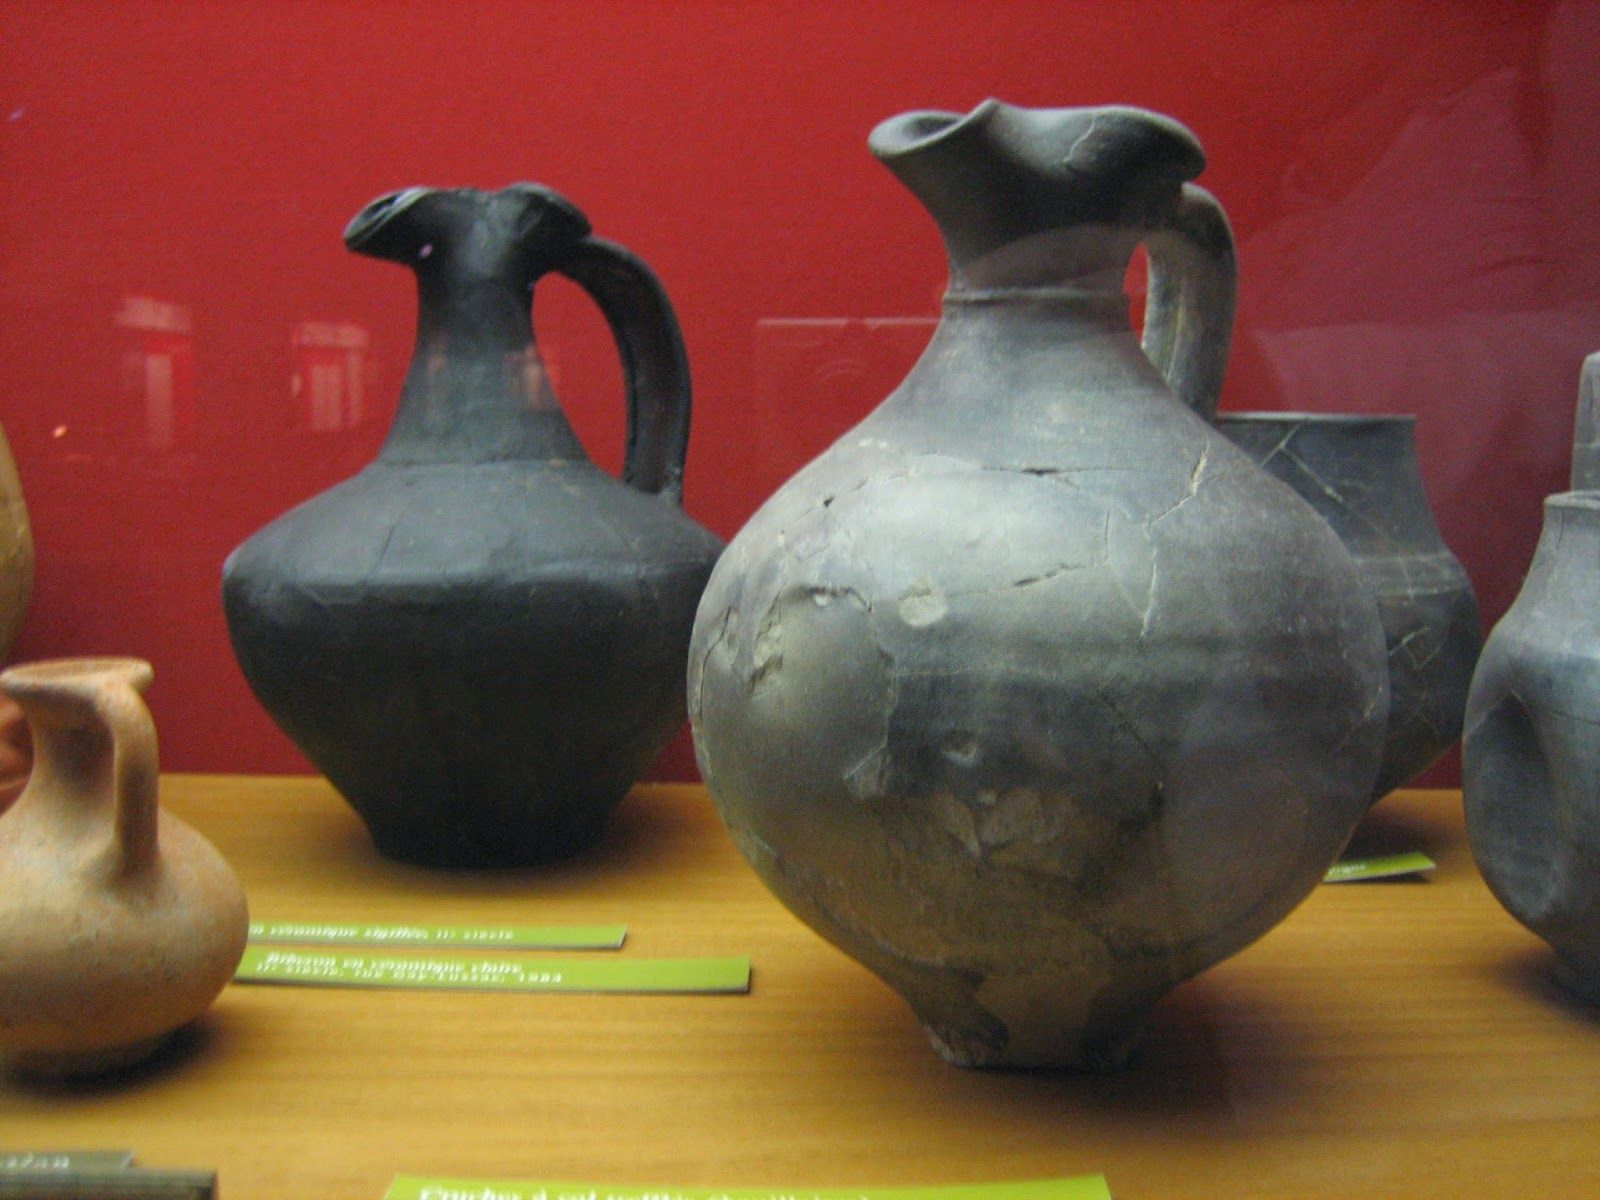 This Is A Roman Earthenware Flagons That Is A Traditional Drinking Vessel With Elegance And Style It Is Made From Leather Me Wine Terms Wine Drinking Vessels